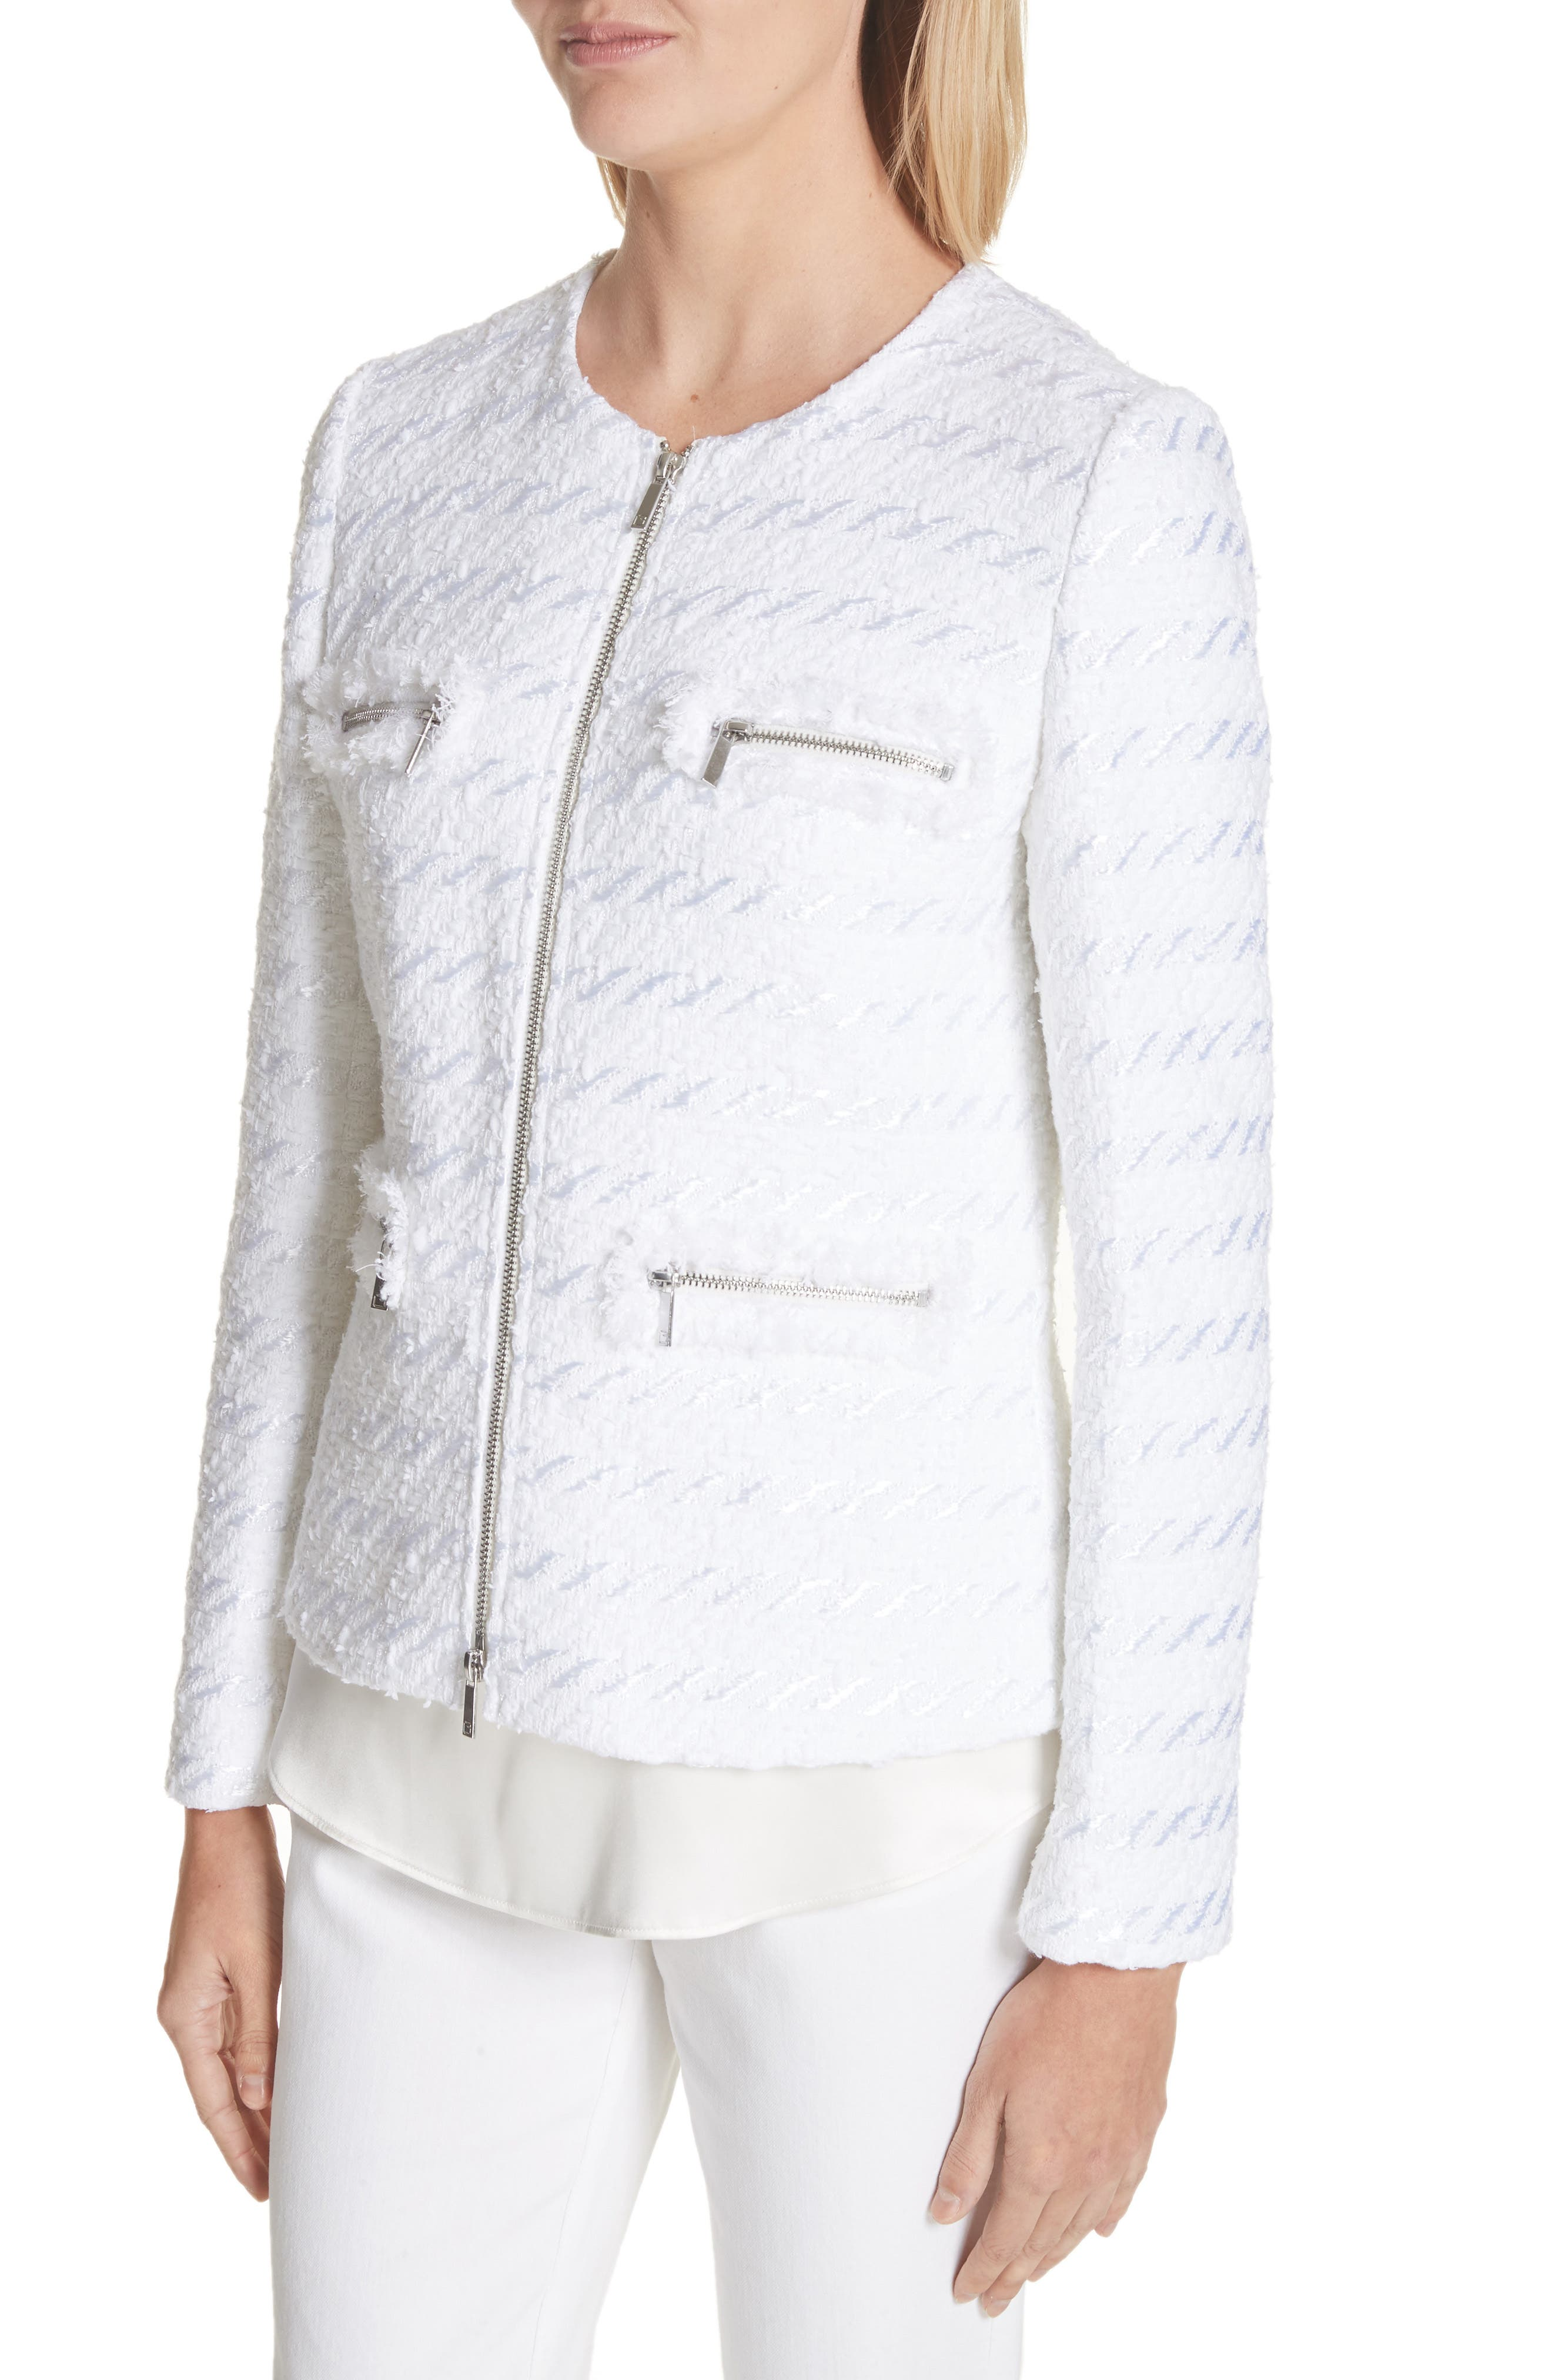 Emelyn Jacquard Jacket,                             Alternate thumbnail 4, color,                             100